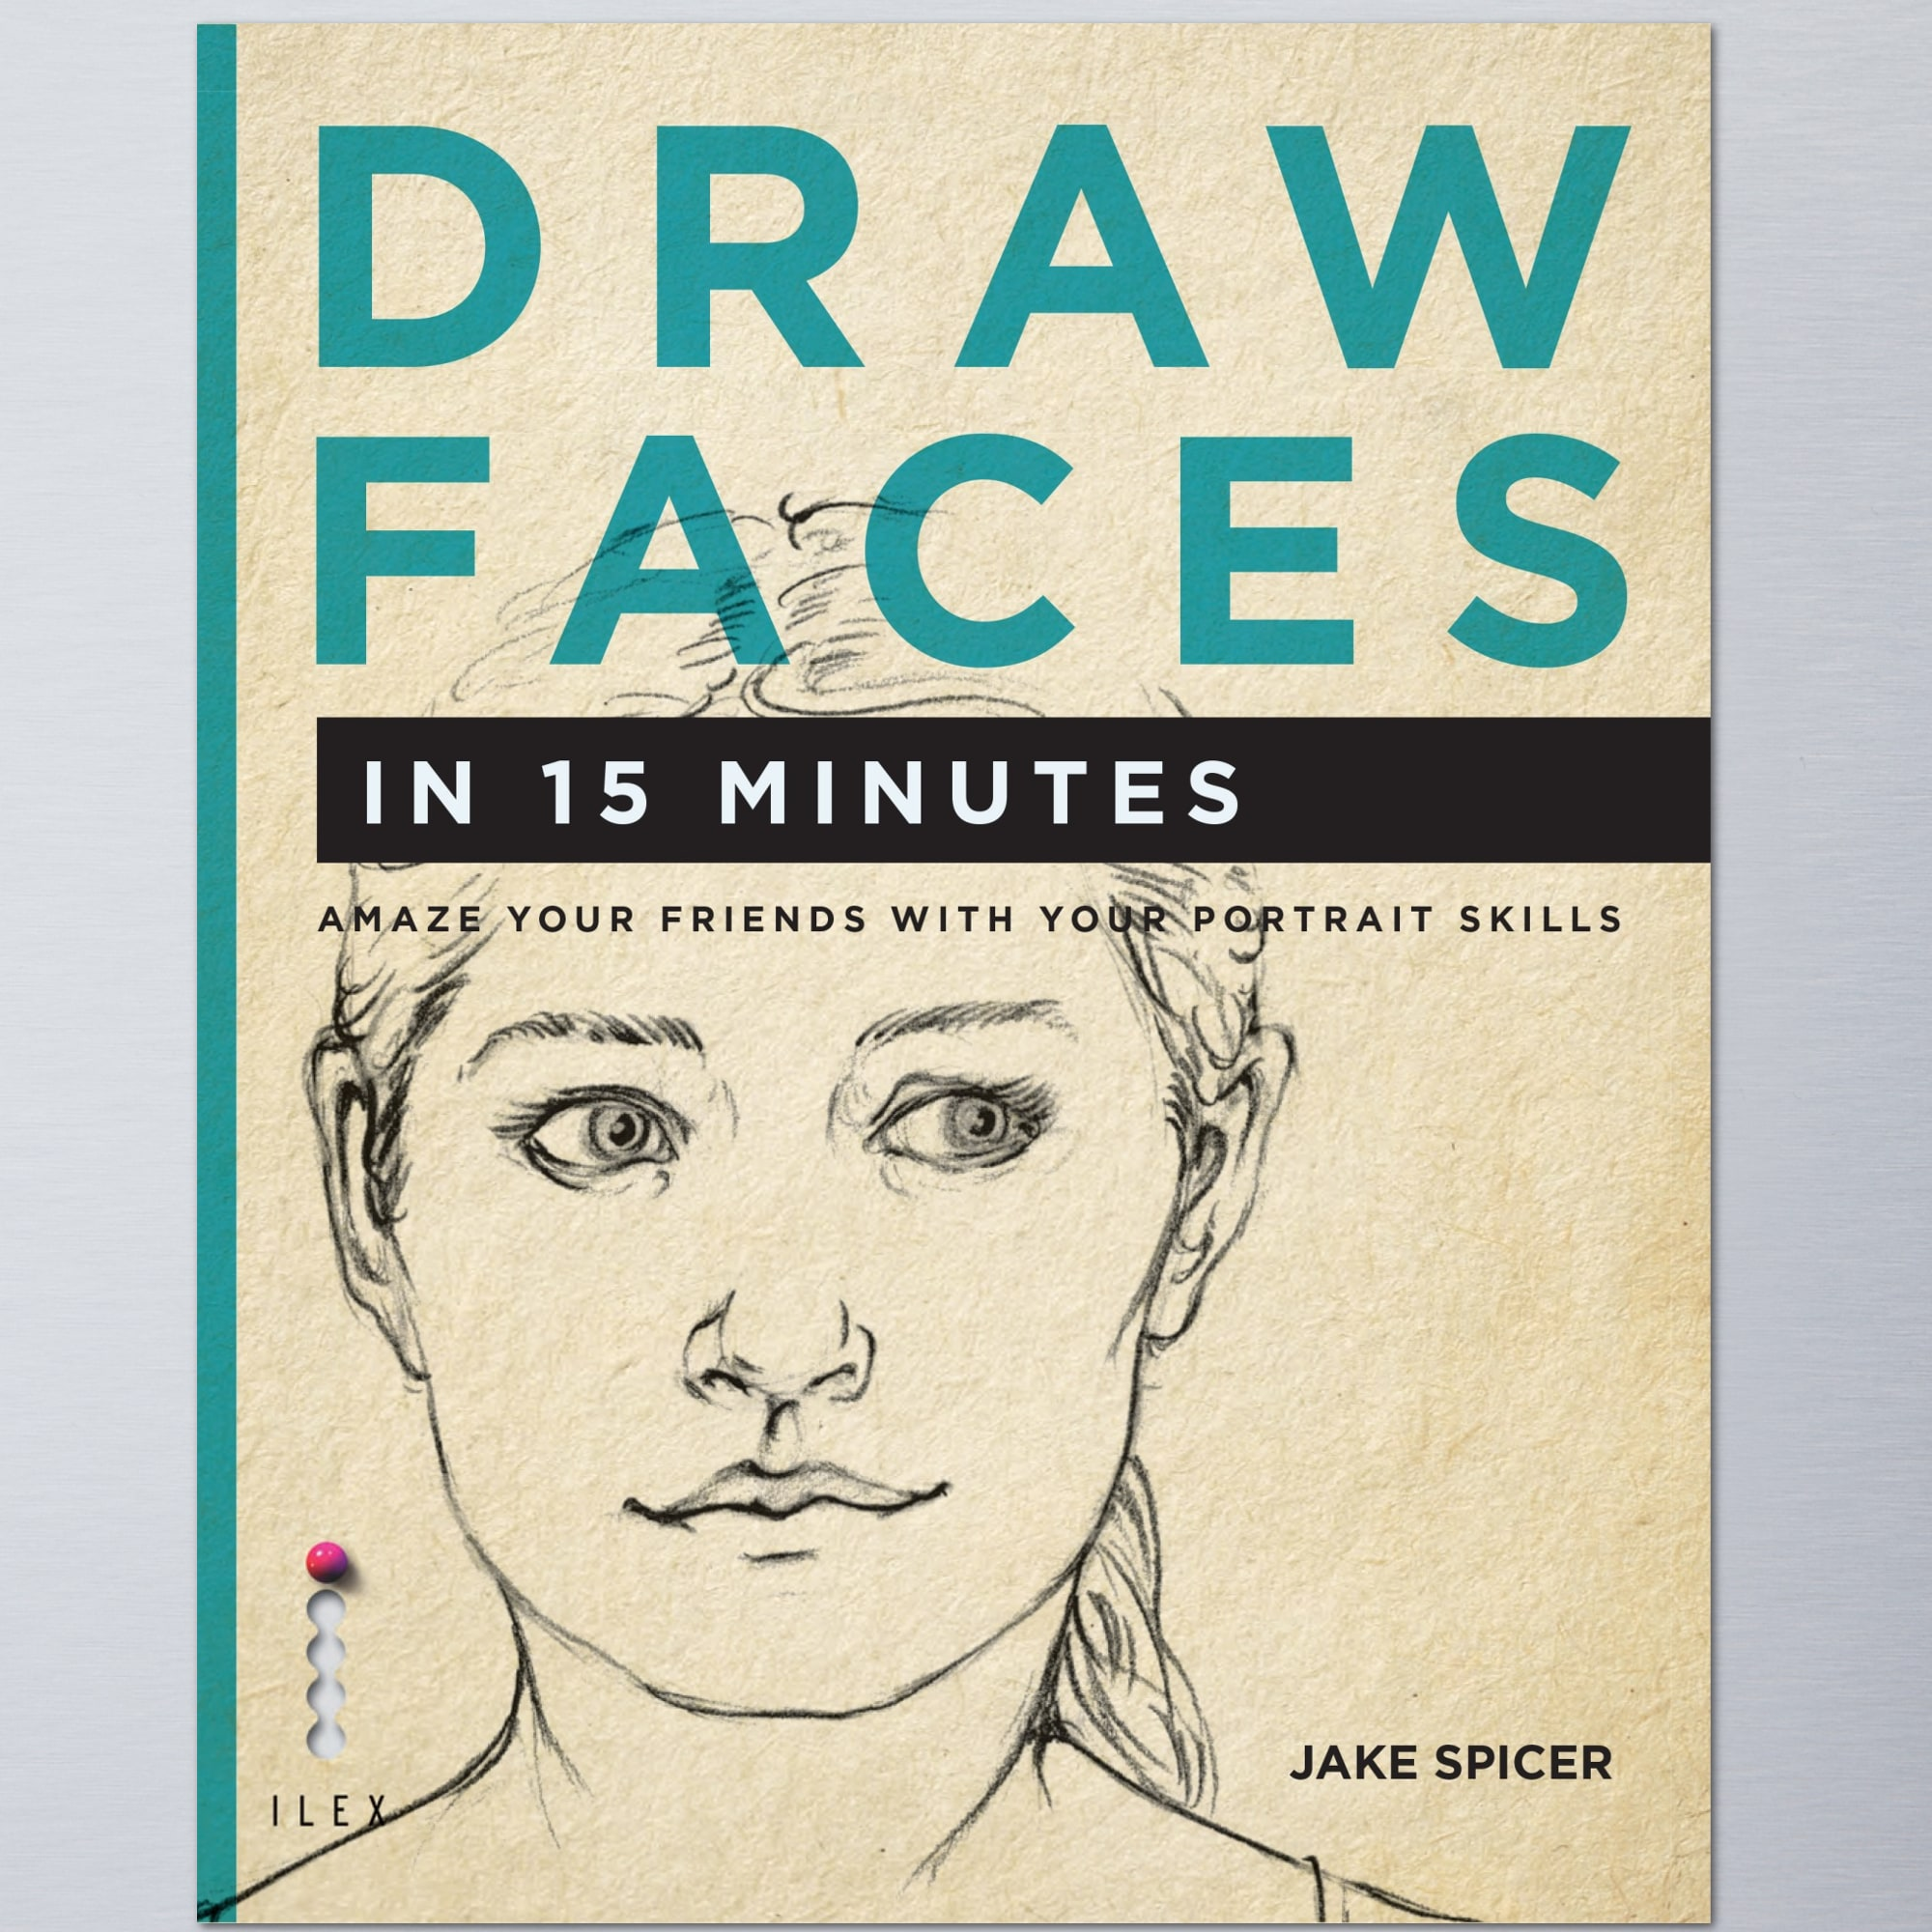 DRAW FACES book -  how to draw course with Jake Spicer on Yodomo